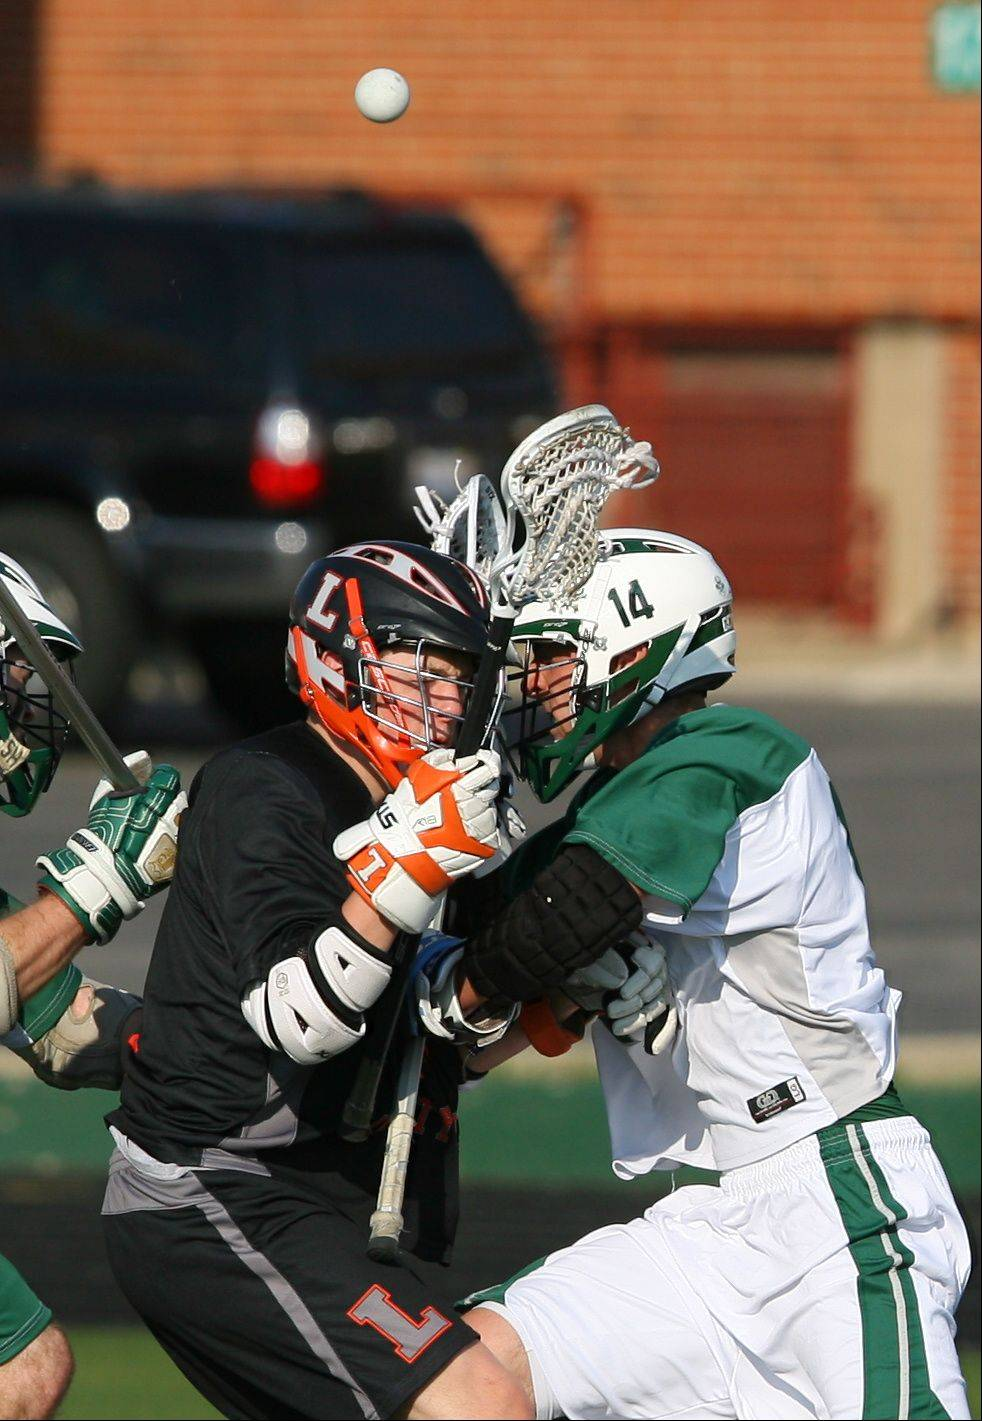 Images from the Libertyville vs. Grayslake Central boys lacrosse game Tuesday, March 20.